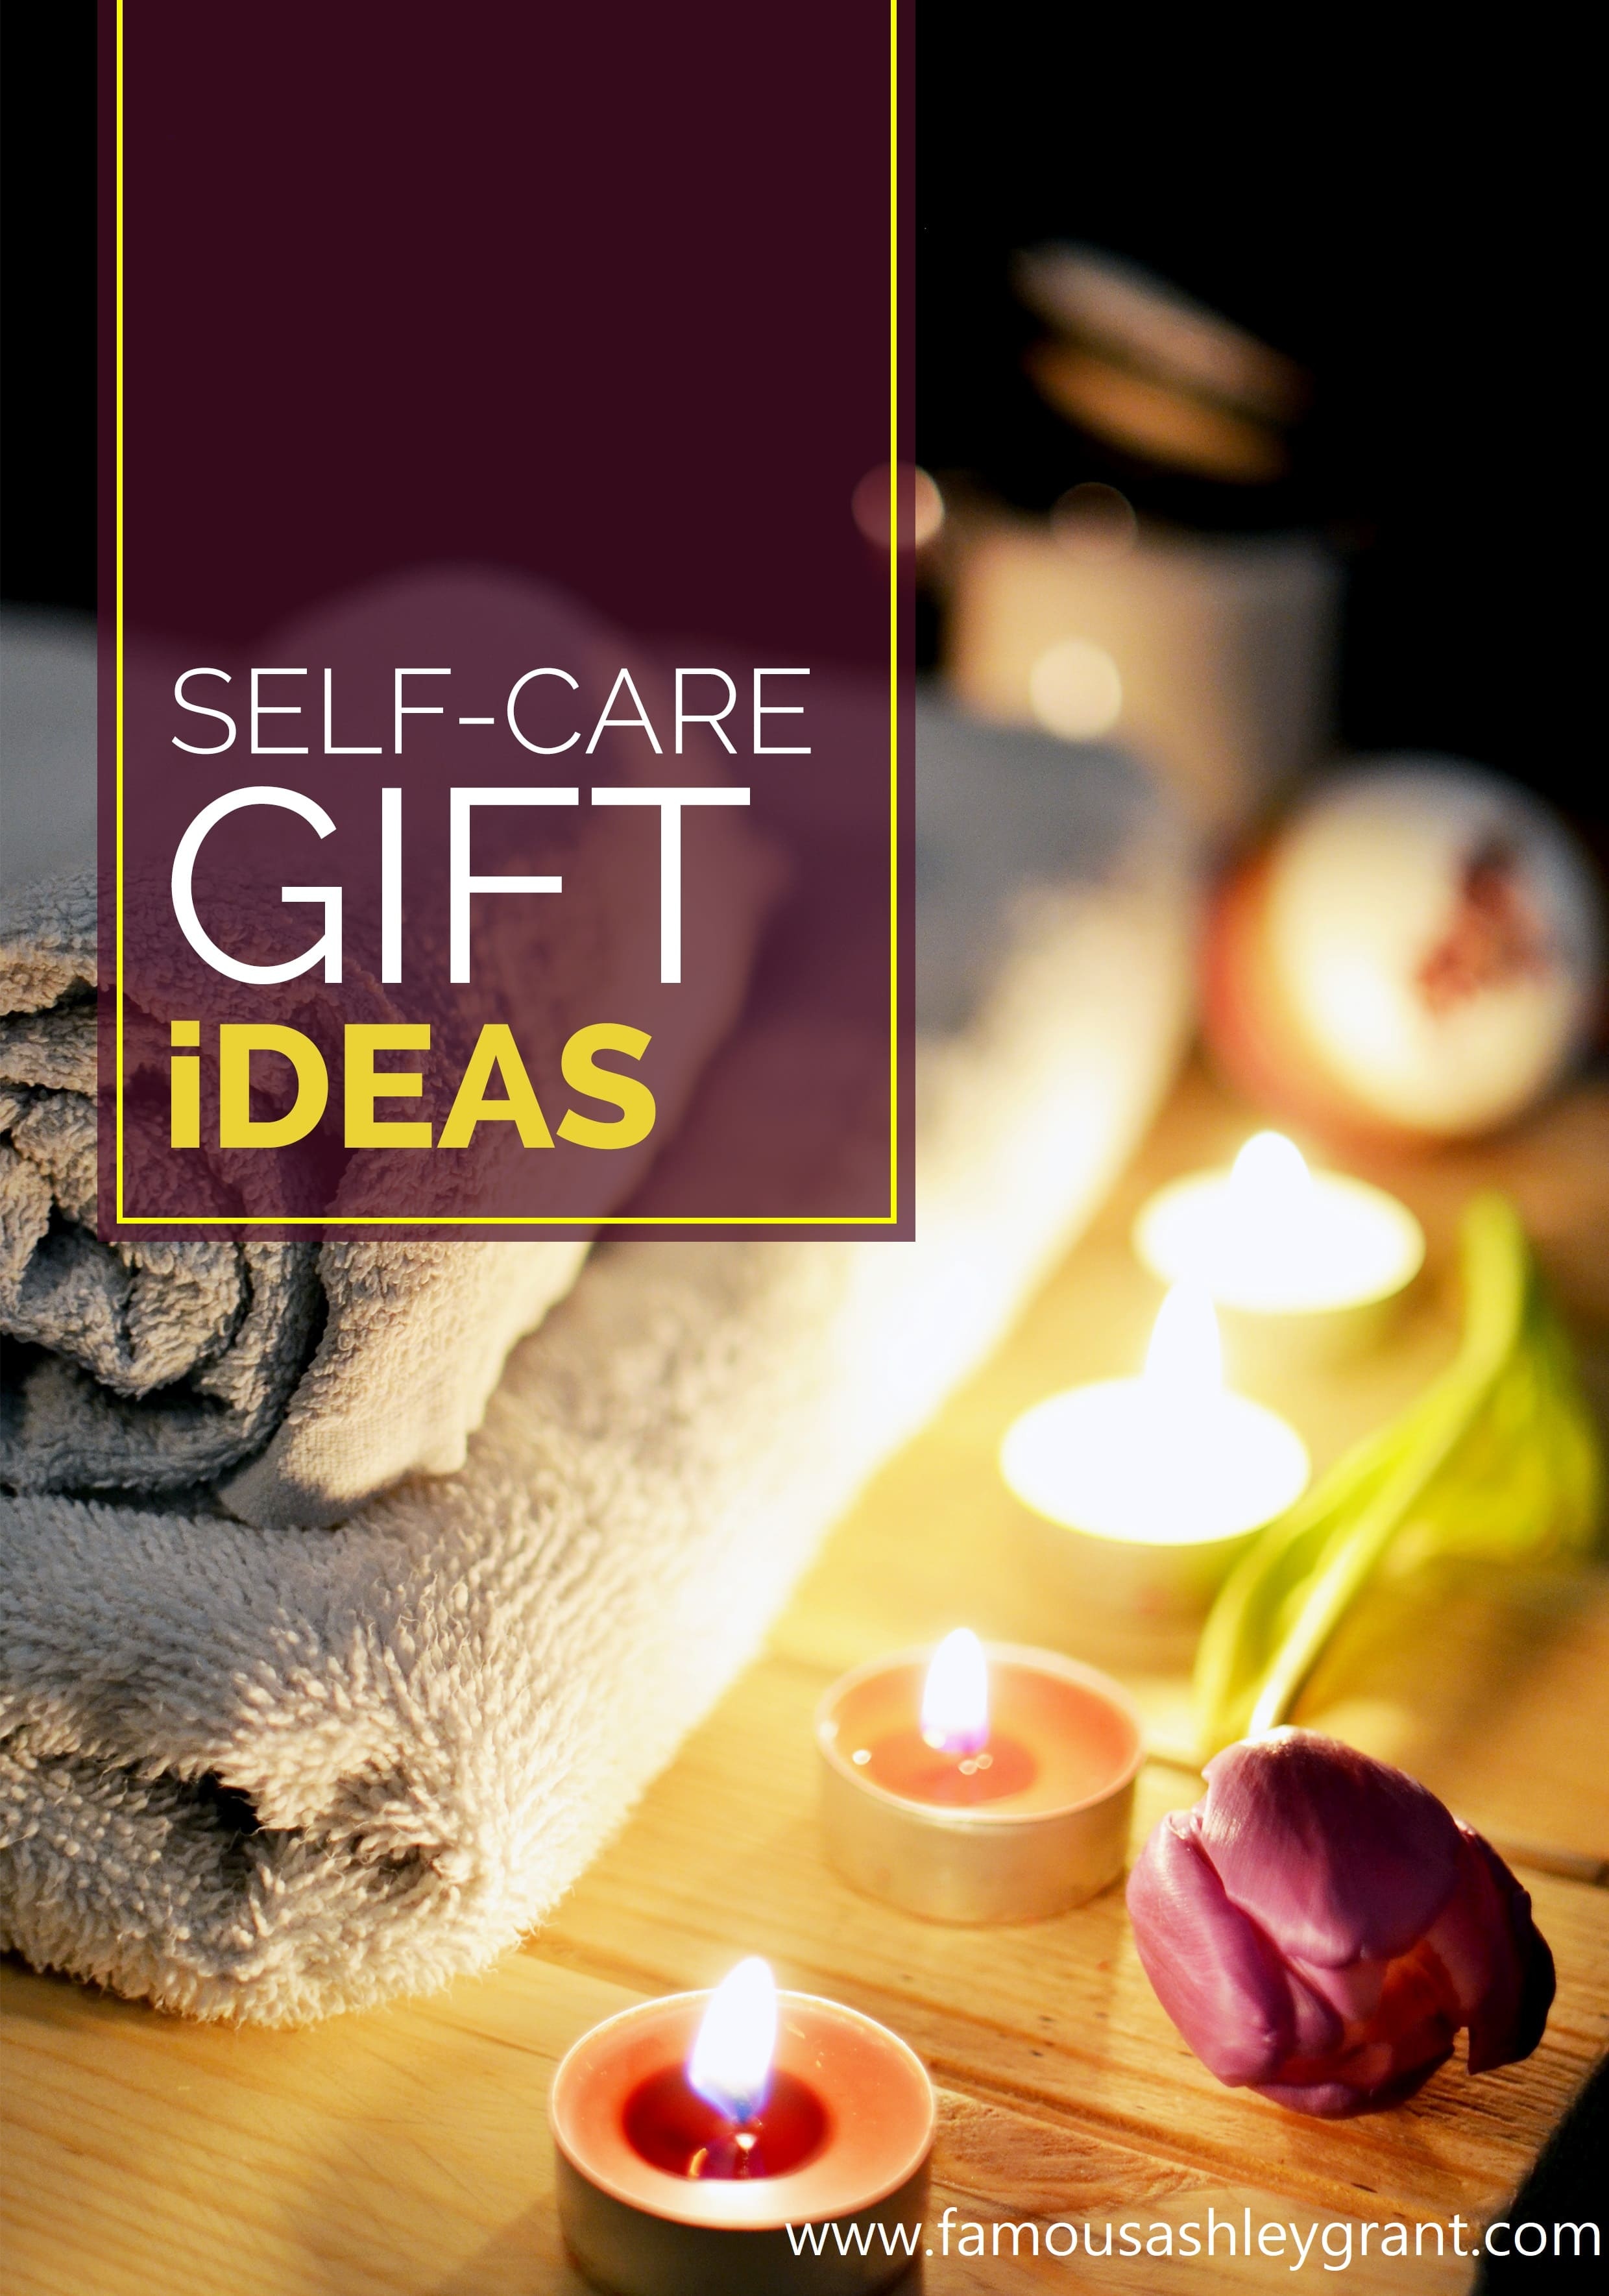 Looking for a gift for someone who needs to indulge more in self-care? You've come to the right place! This post is full of self-care gift ideas.